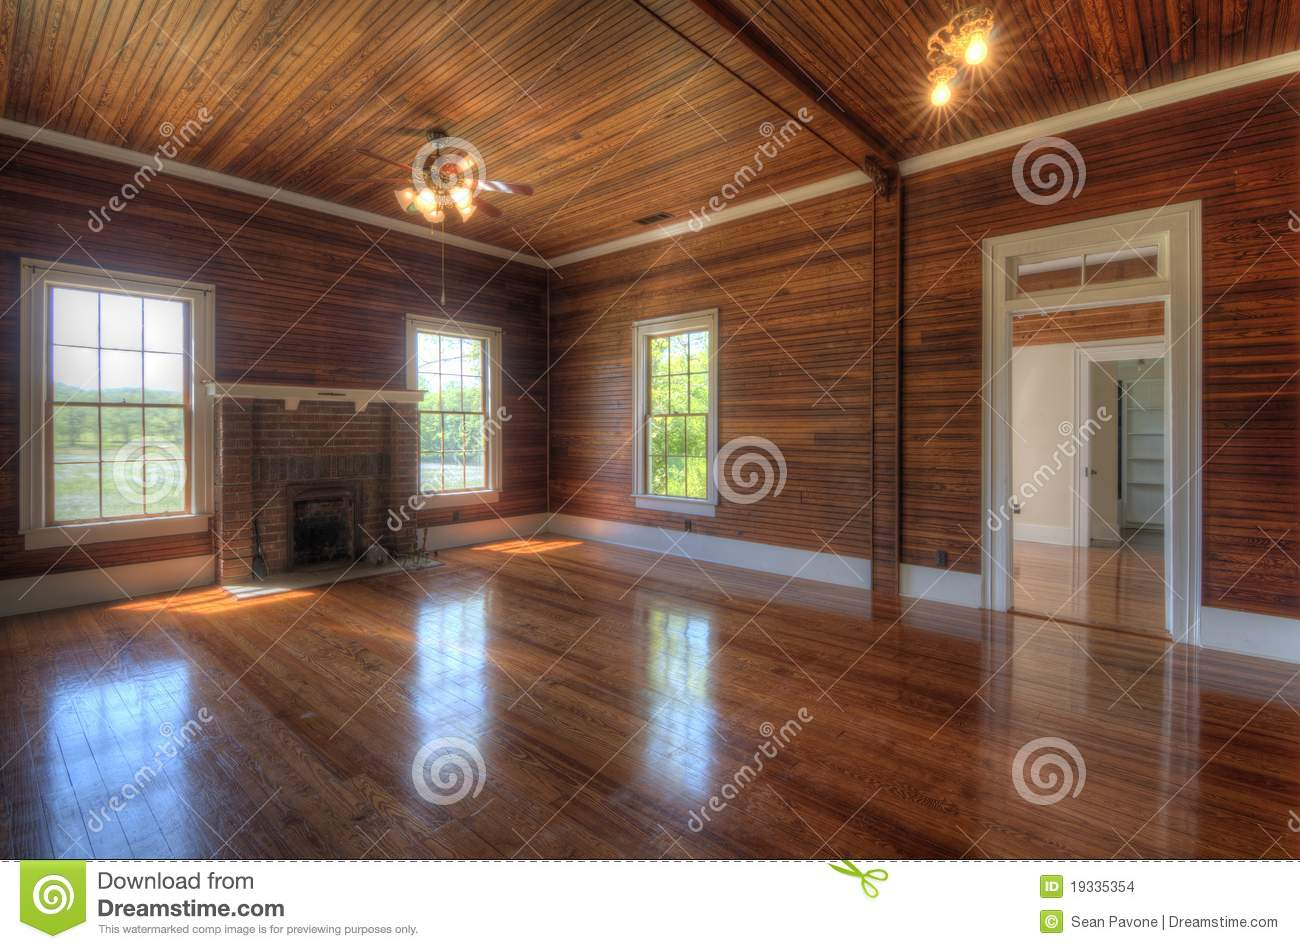 Wooden Interior Living Room Stock Photo  Image 19335354